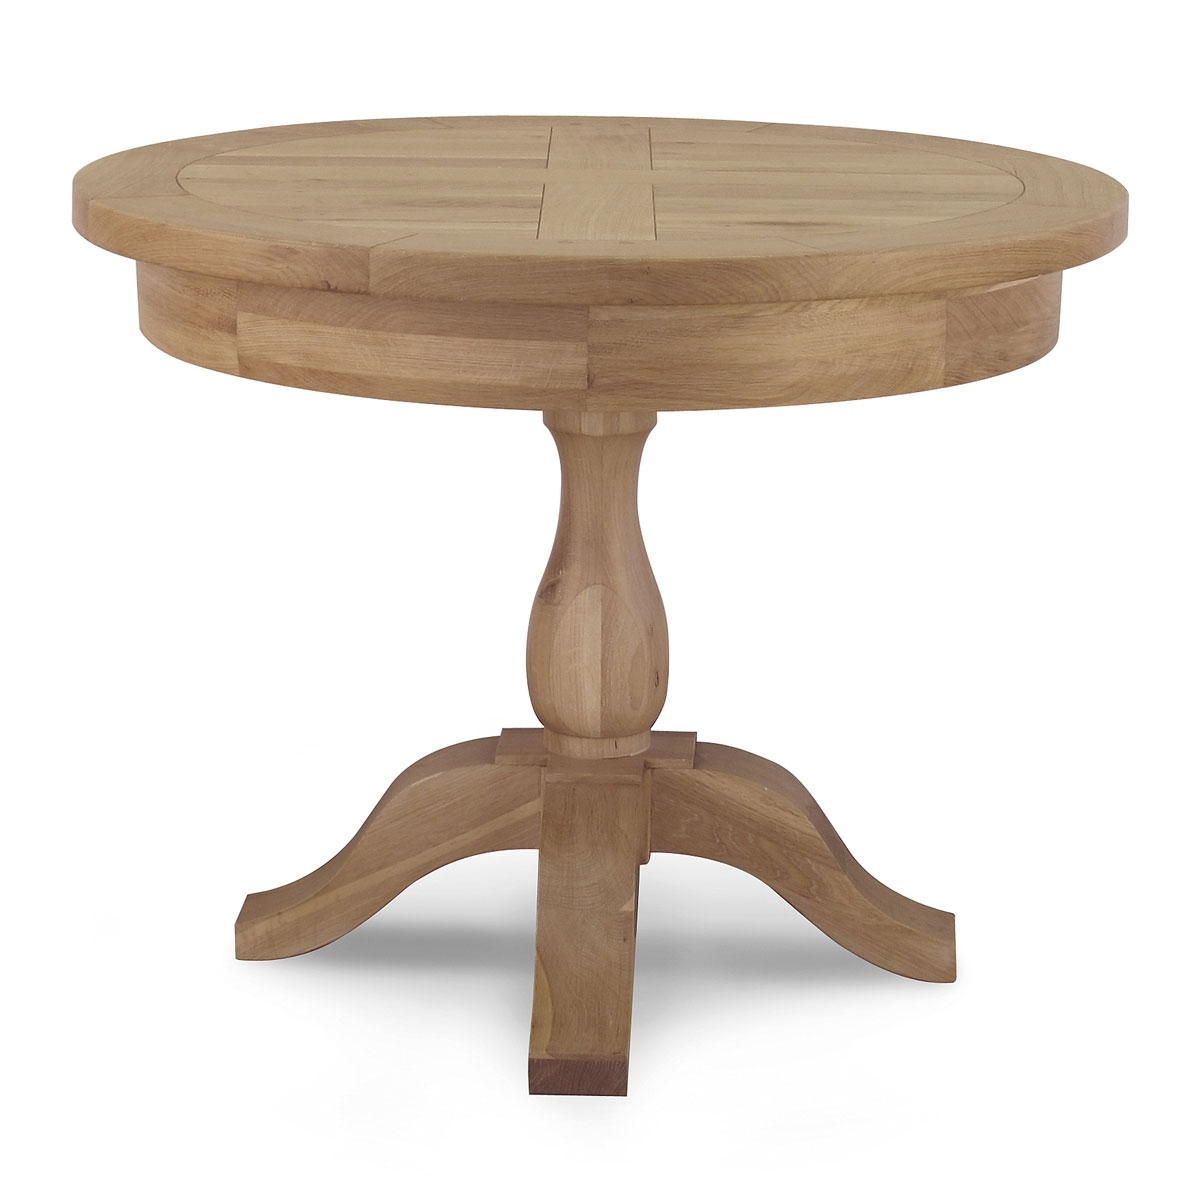 Circular Oak Dining Tables In Well Liked Tuscany Round Dining Table – Willis & Gambier (View 19 of 25)